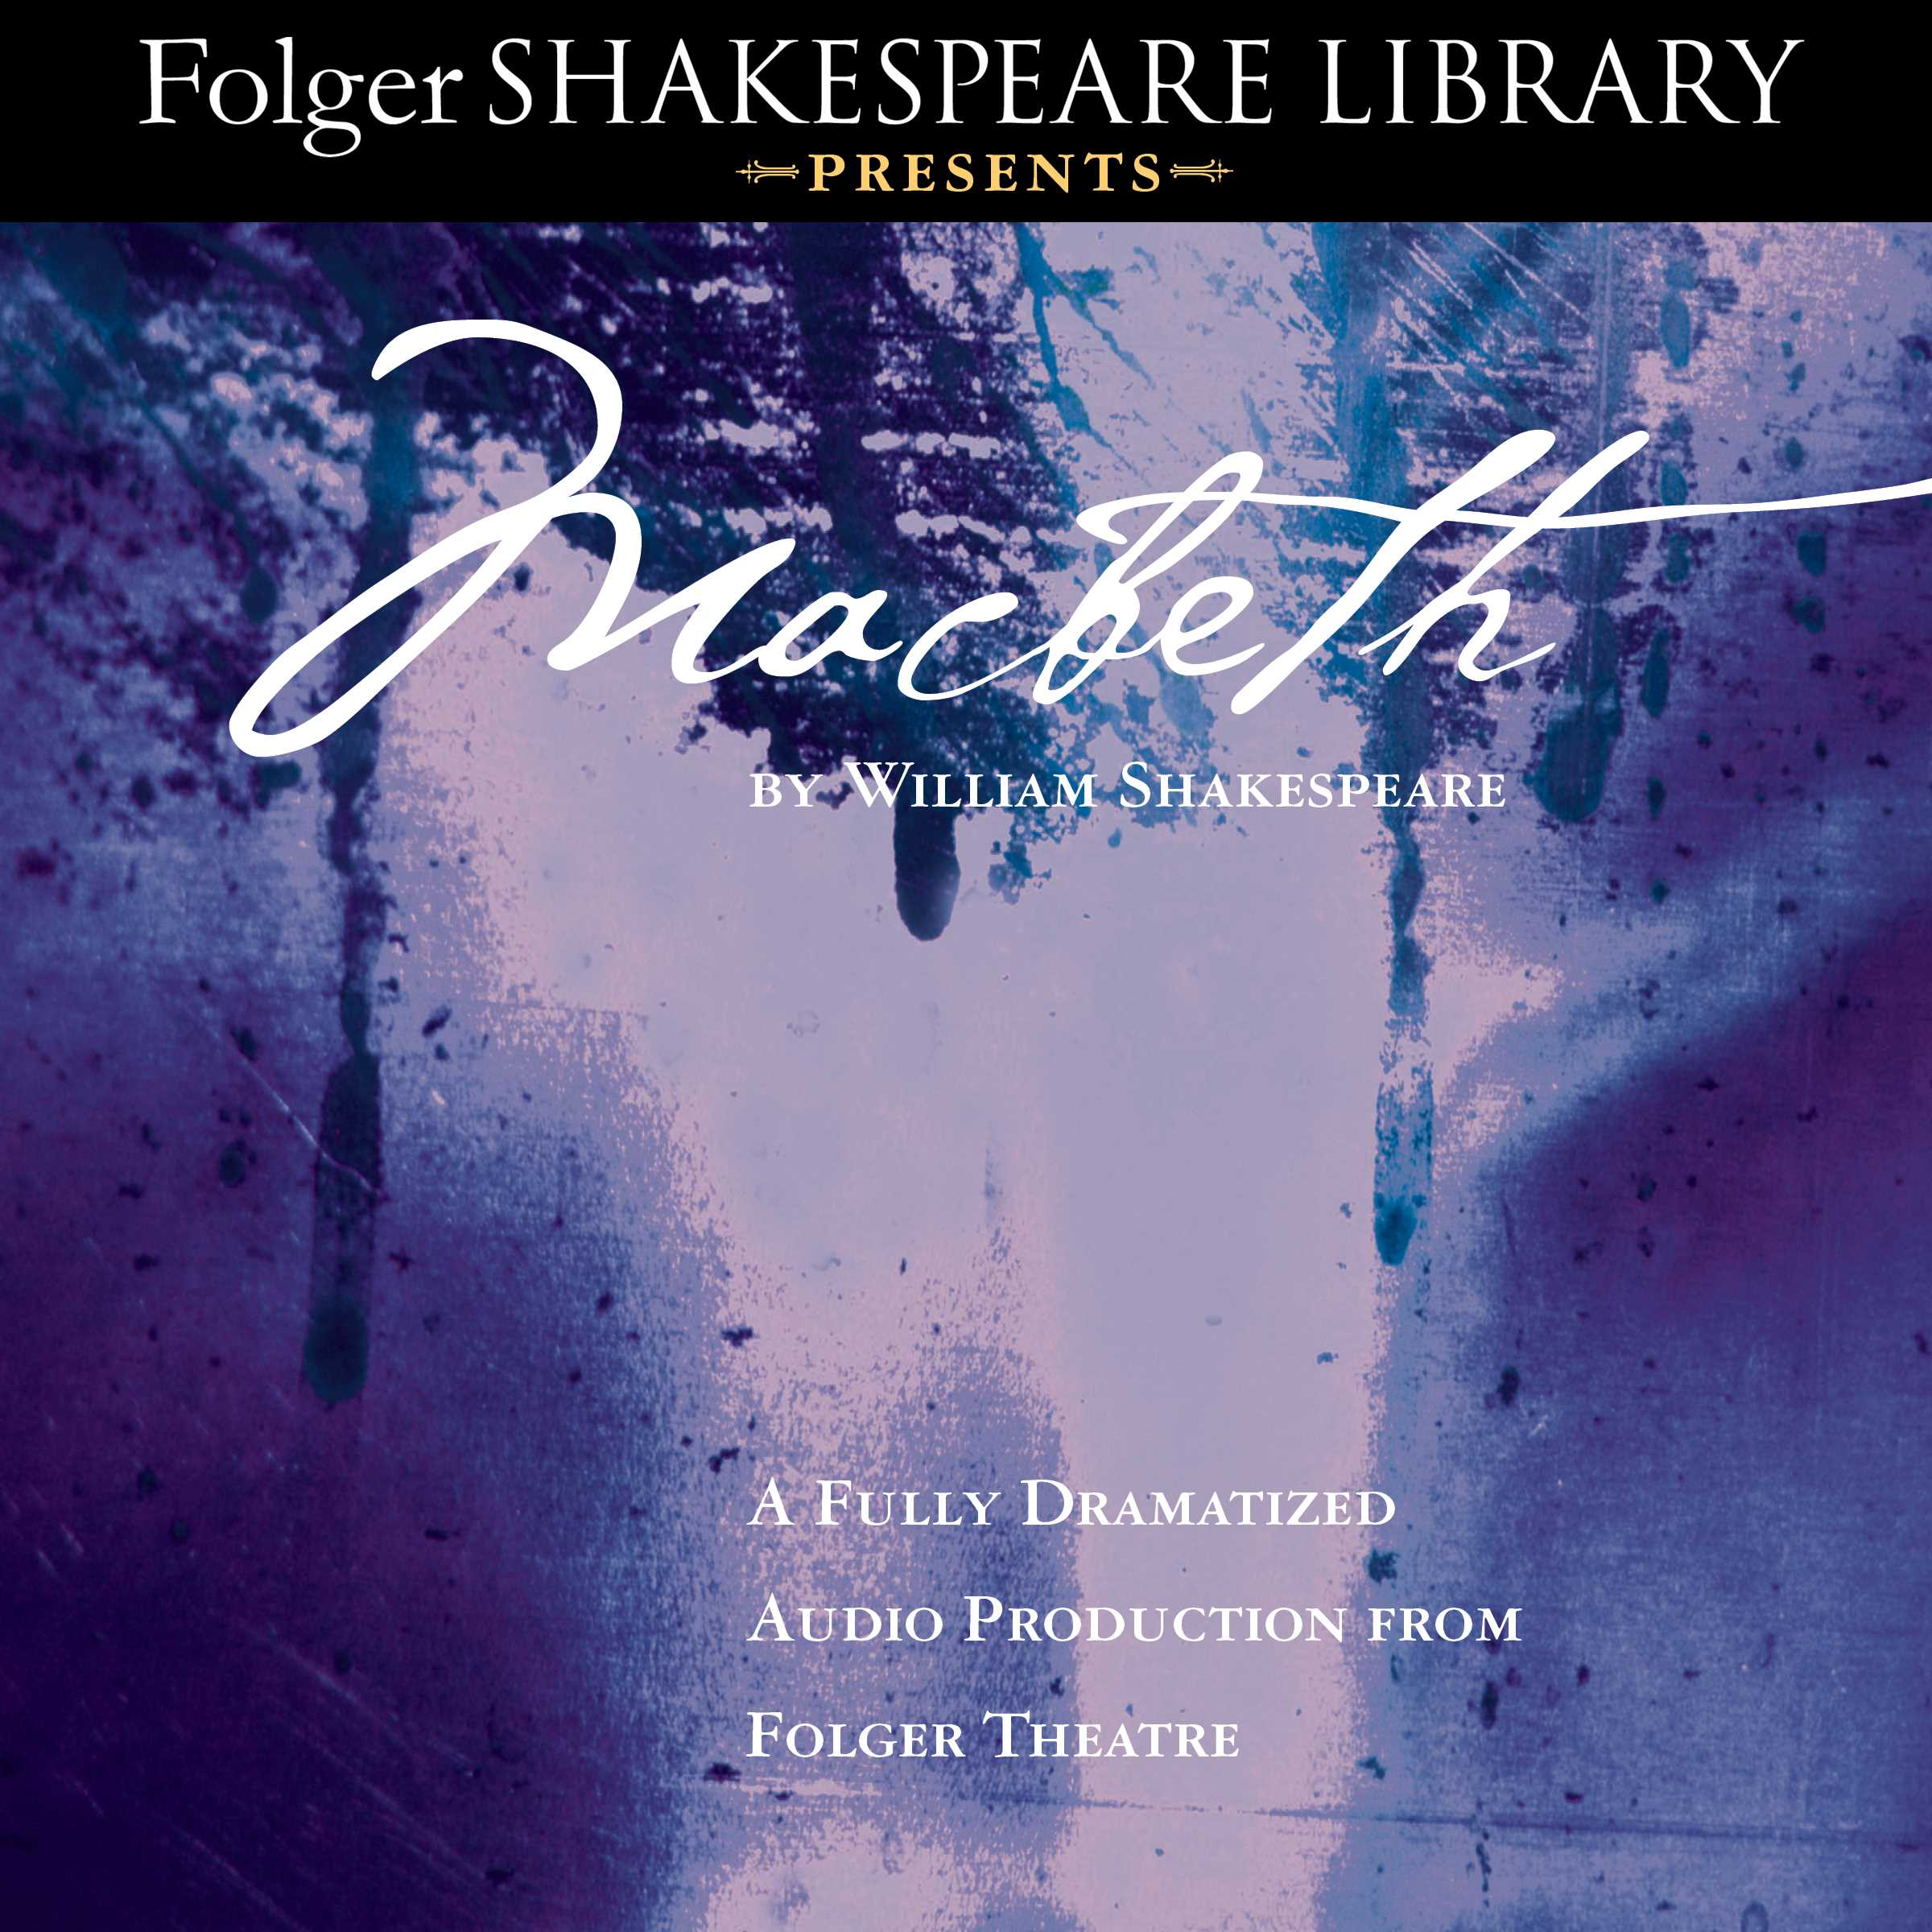 how shakespeare presents macbeths treatment of Shakespeare presents macbeth more extensively as a villain using methods which would be more understood in the era the play was composed, which was the jacobean period, but influenced by the reign of elizabeth.